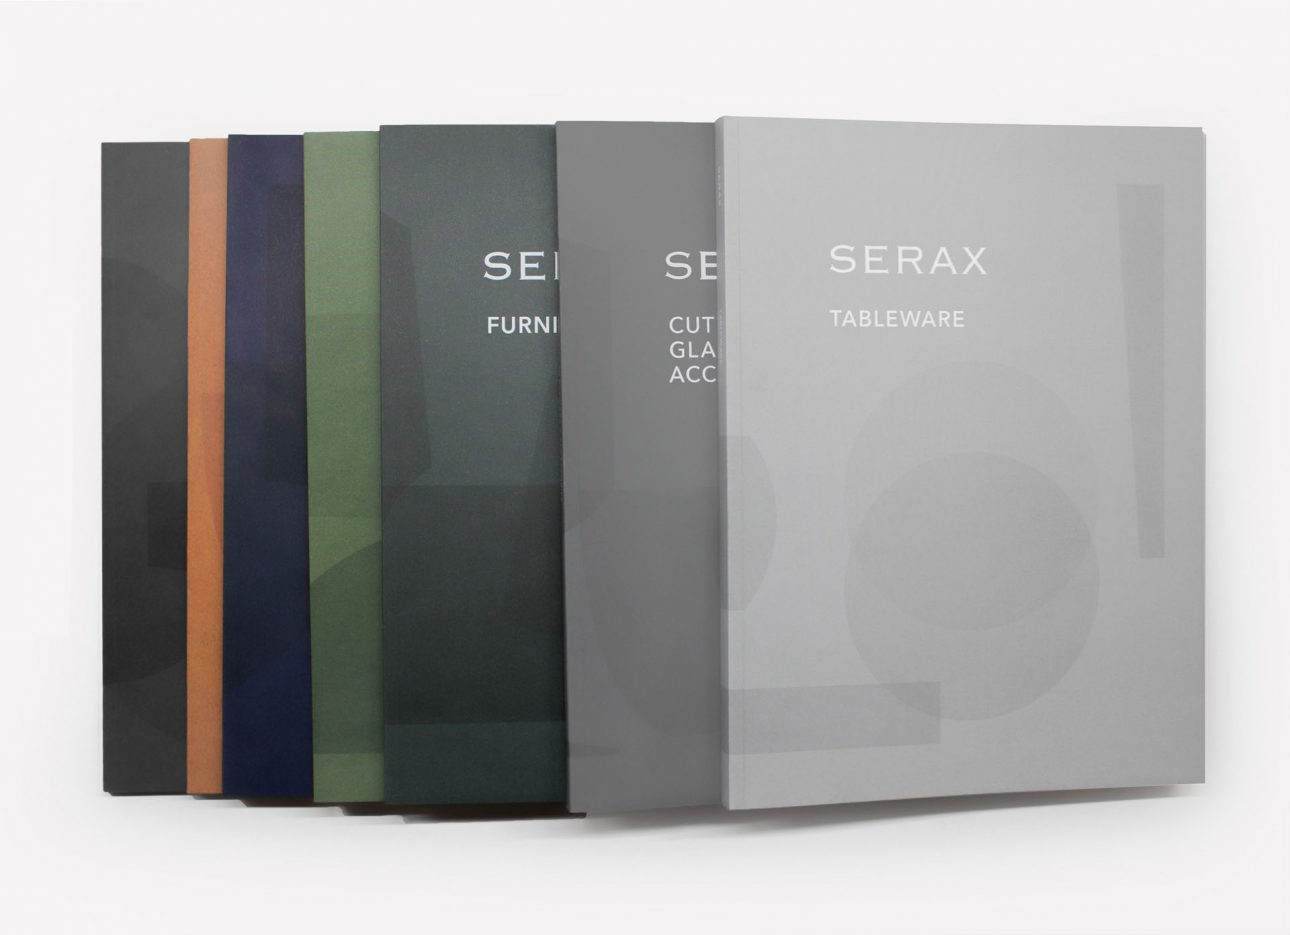 SERAX Catalogs SS18 Covers